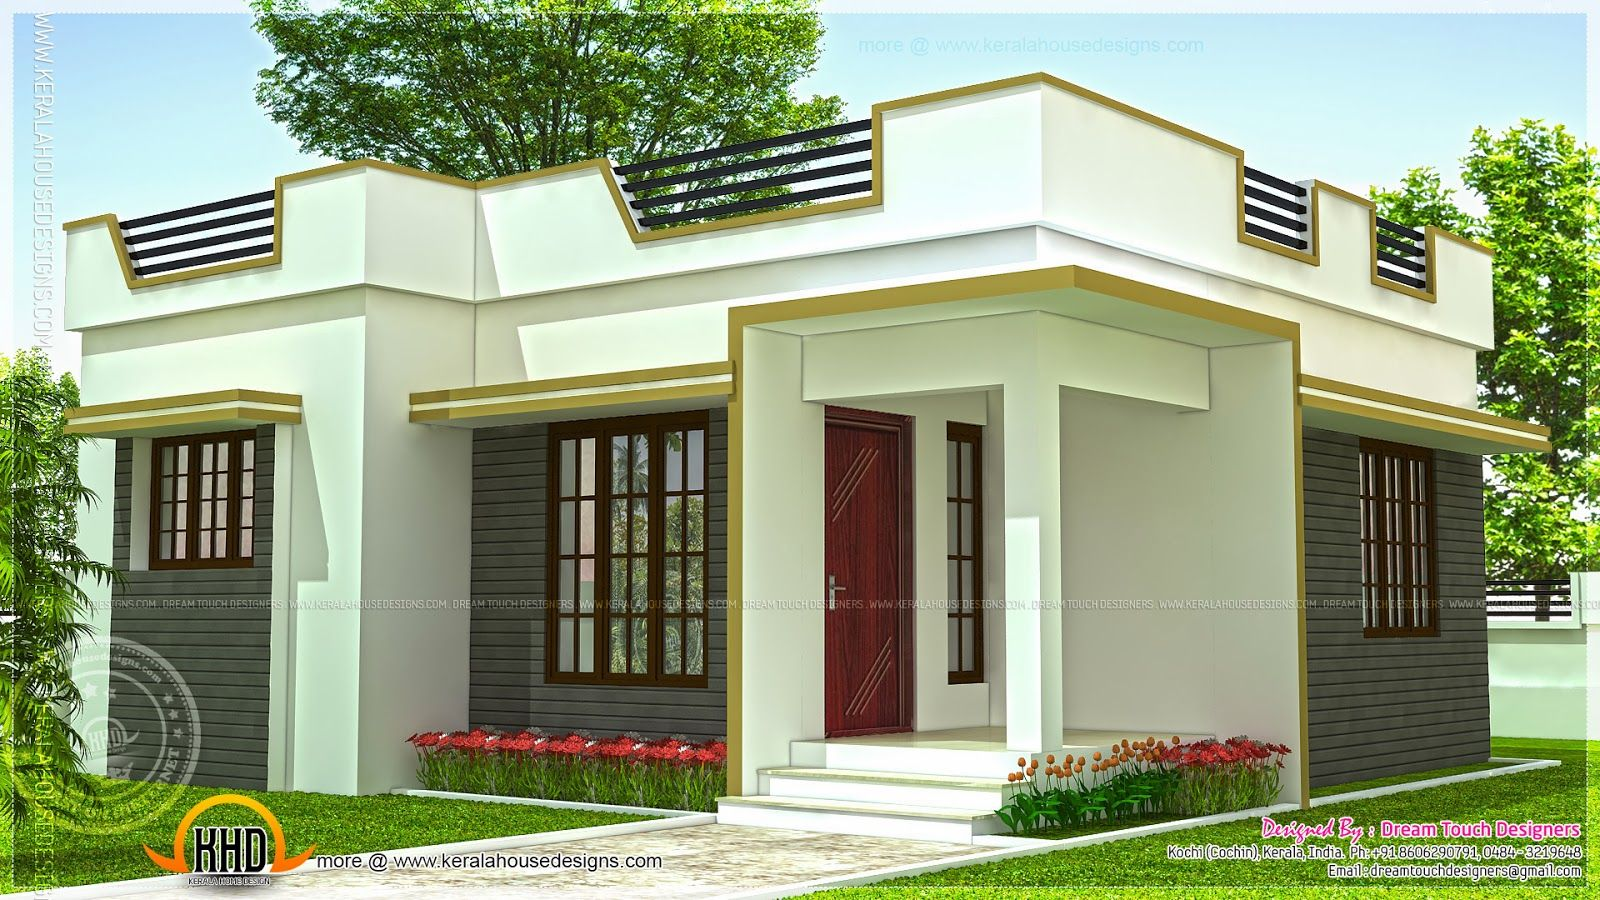 Lately 21 small house design kerala small house 1600 900 best house pinterest - Best design houses ...